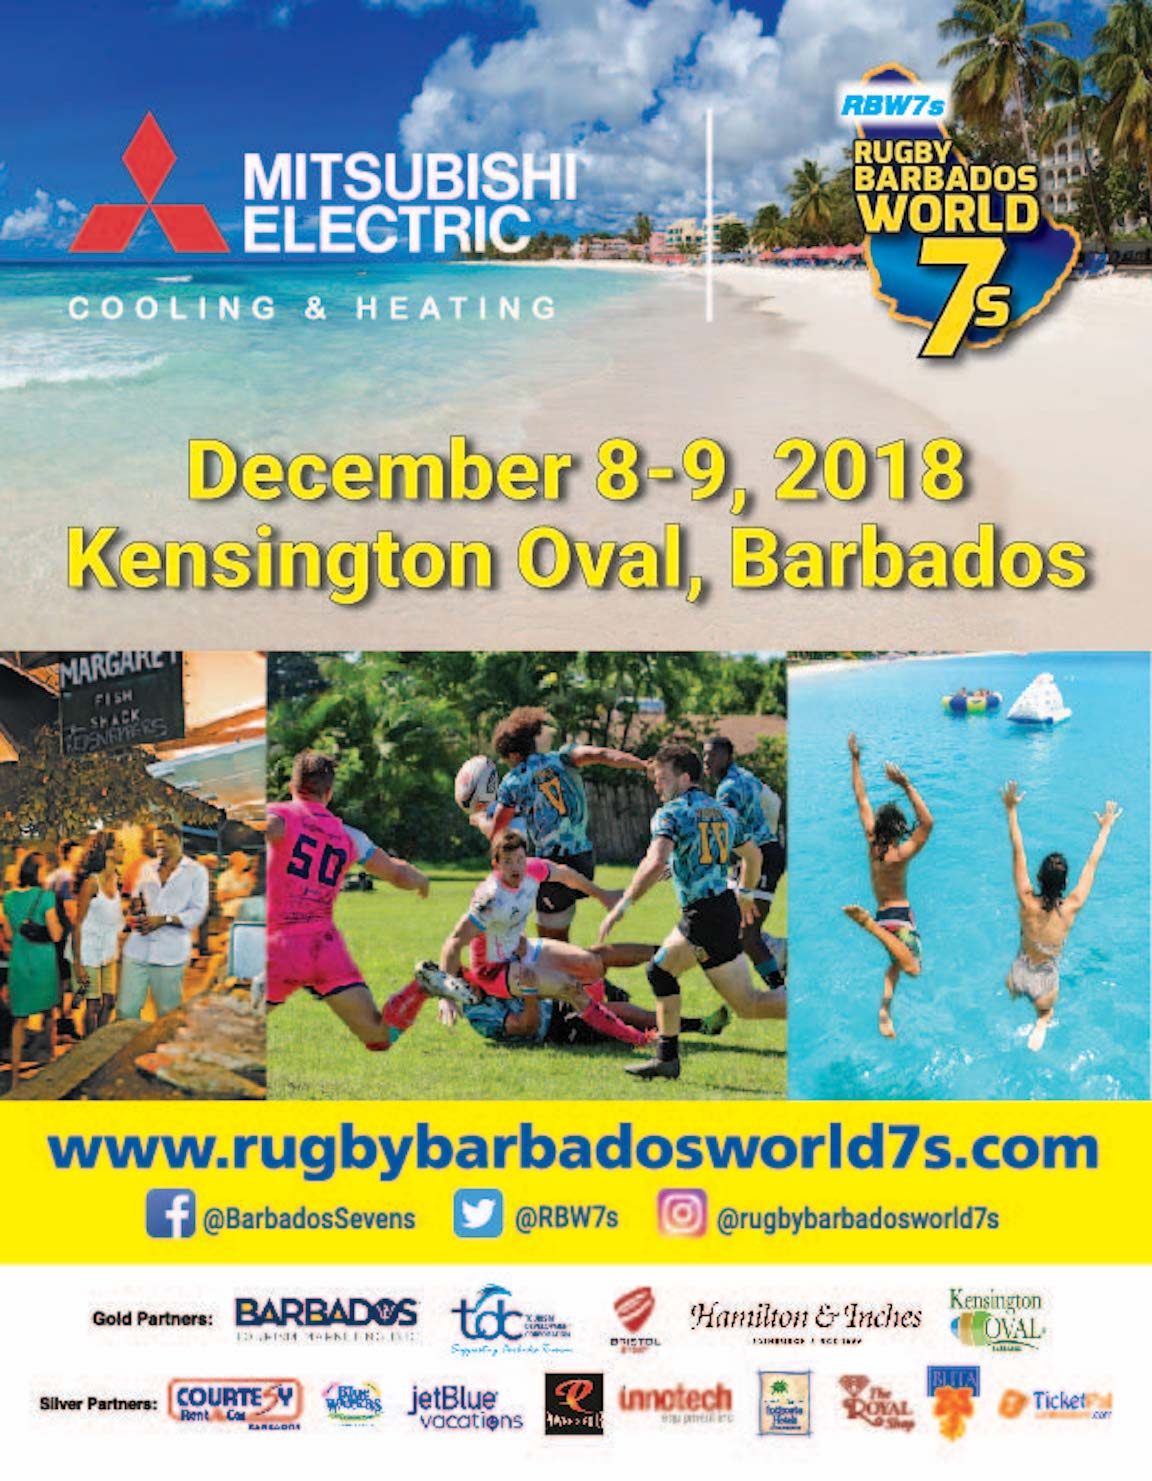 Mitsubishi Electric Rugby Barbados World 7s - 3Ws Stand - General Admission - Day 1